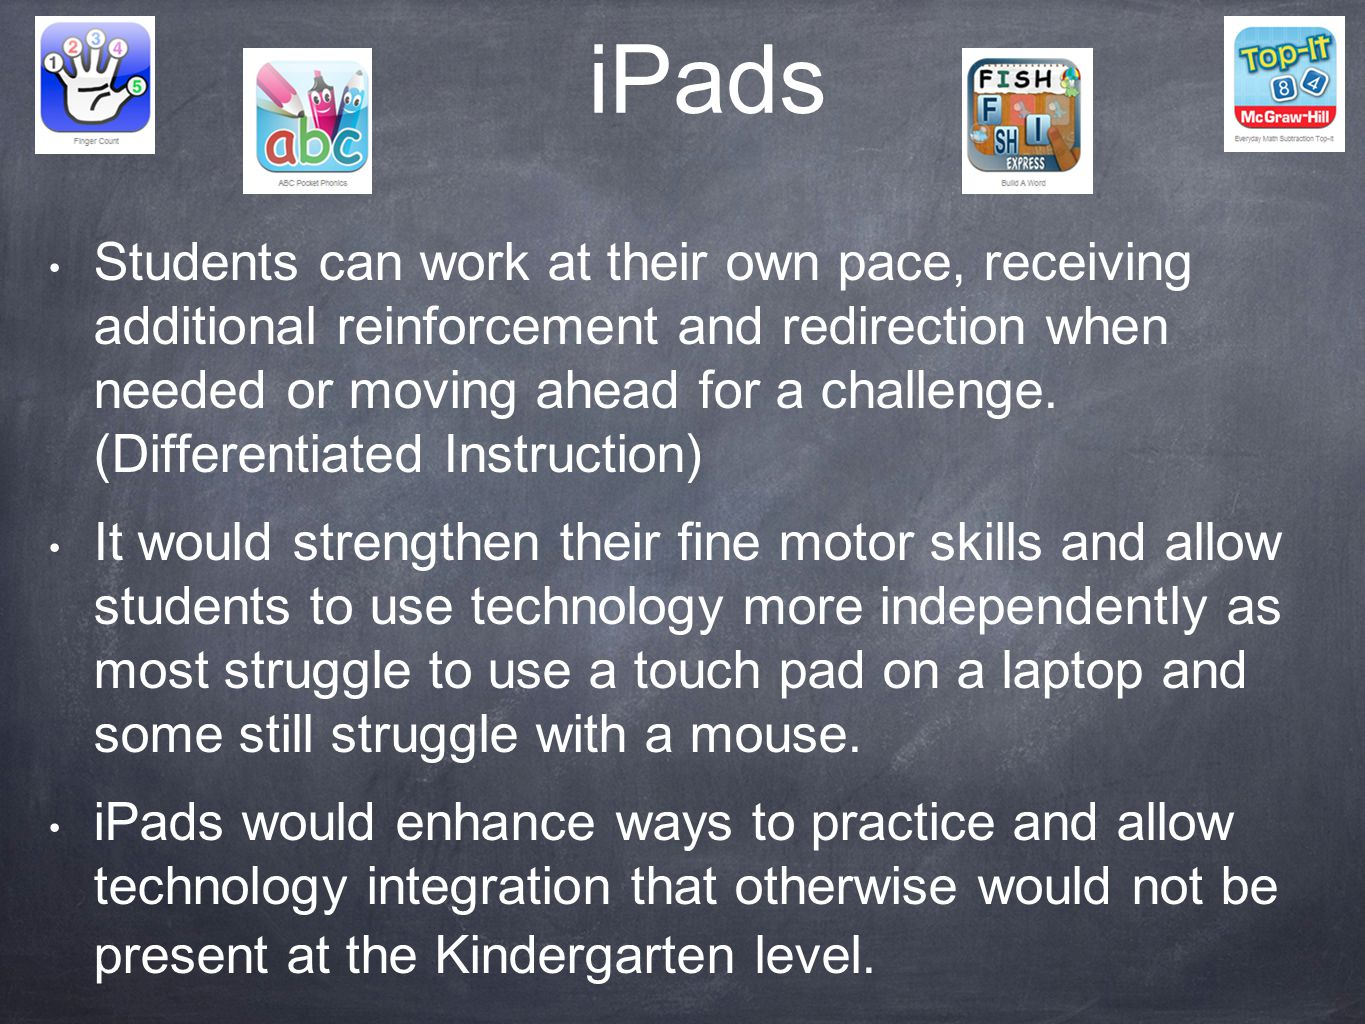 iPads Students can work at their own pace, receiving additional reinforcement and redirection when needed or moving ahead for a challenge. (Differenti